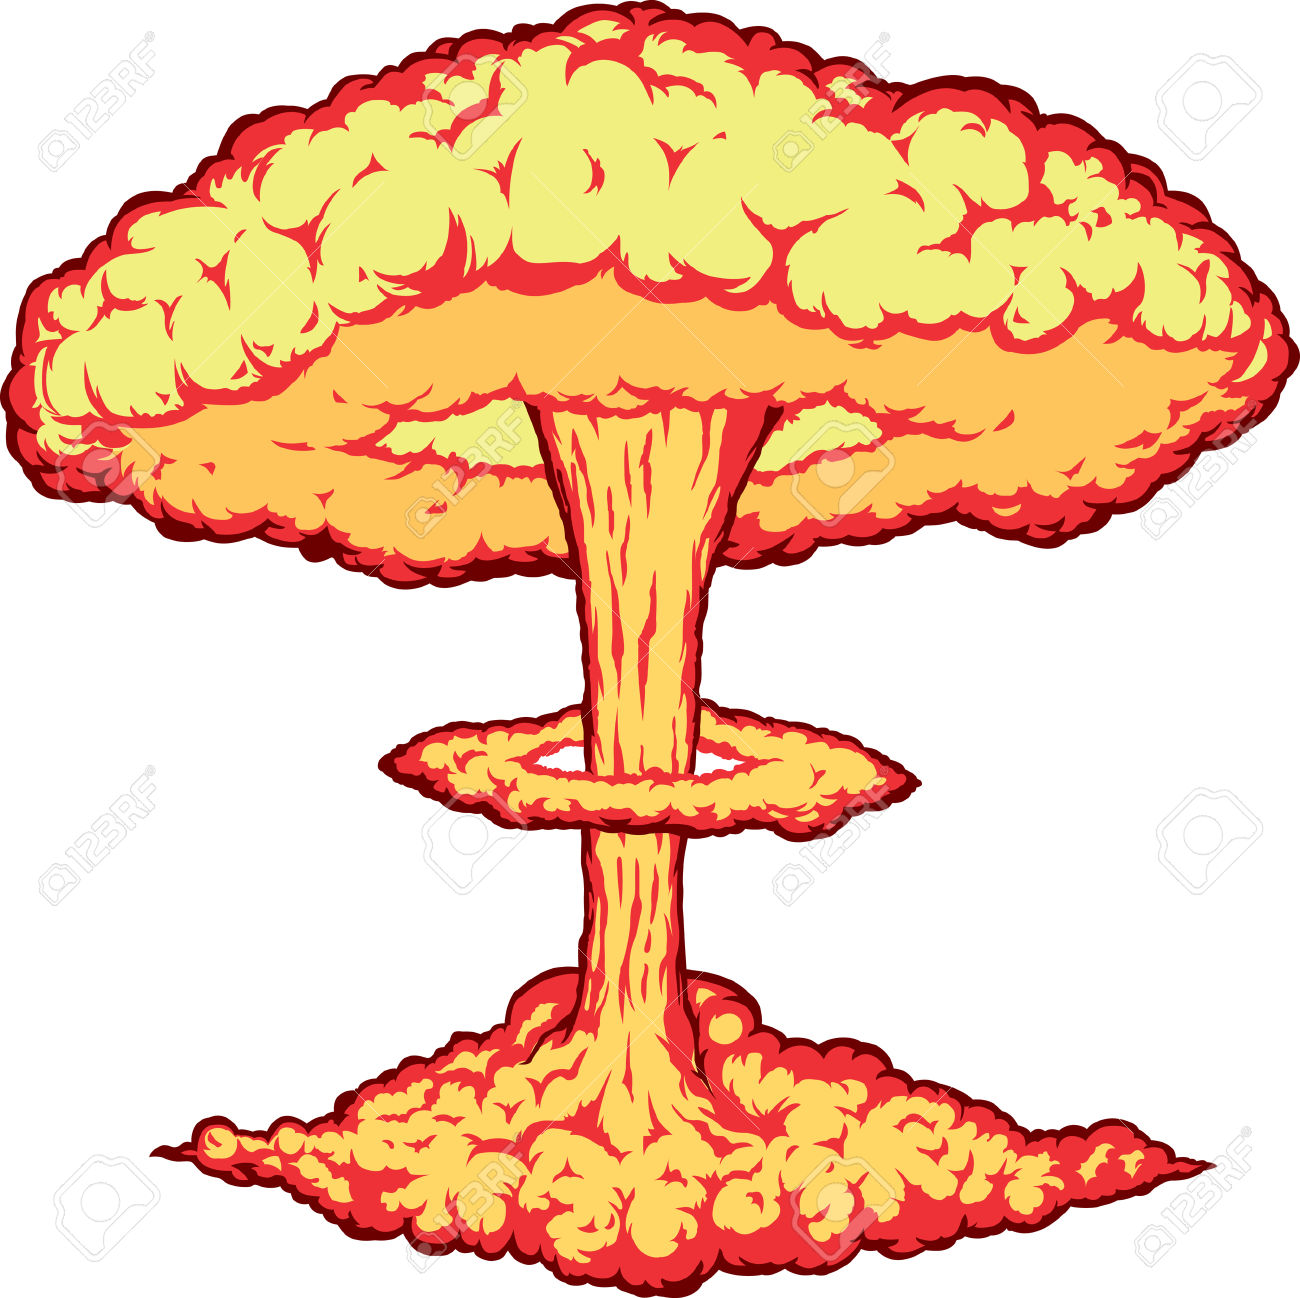 Bomb clipart nuke.  collection of explosion